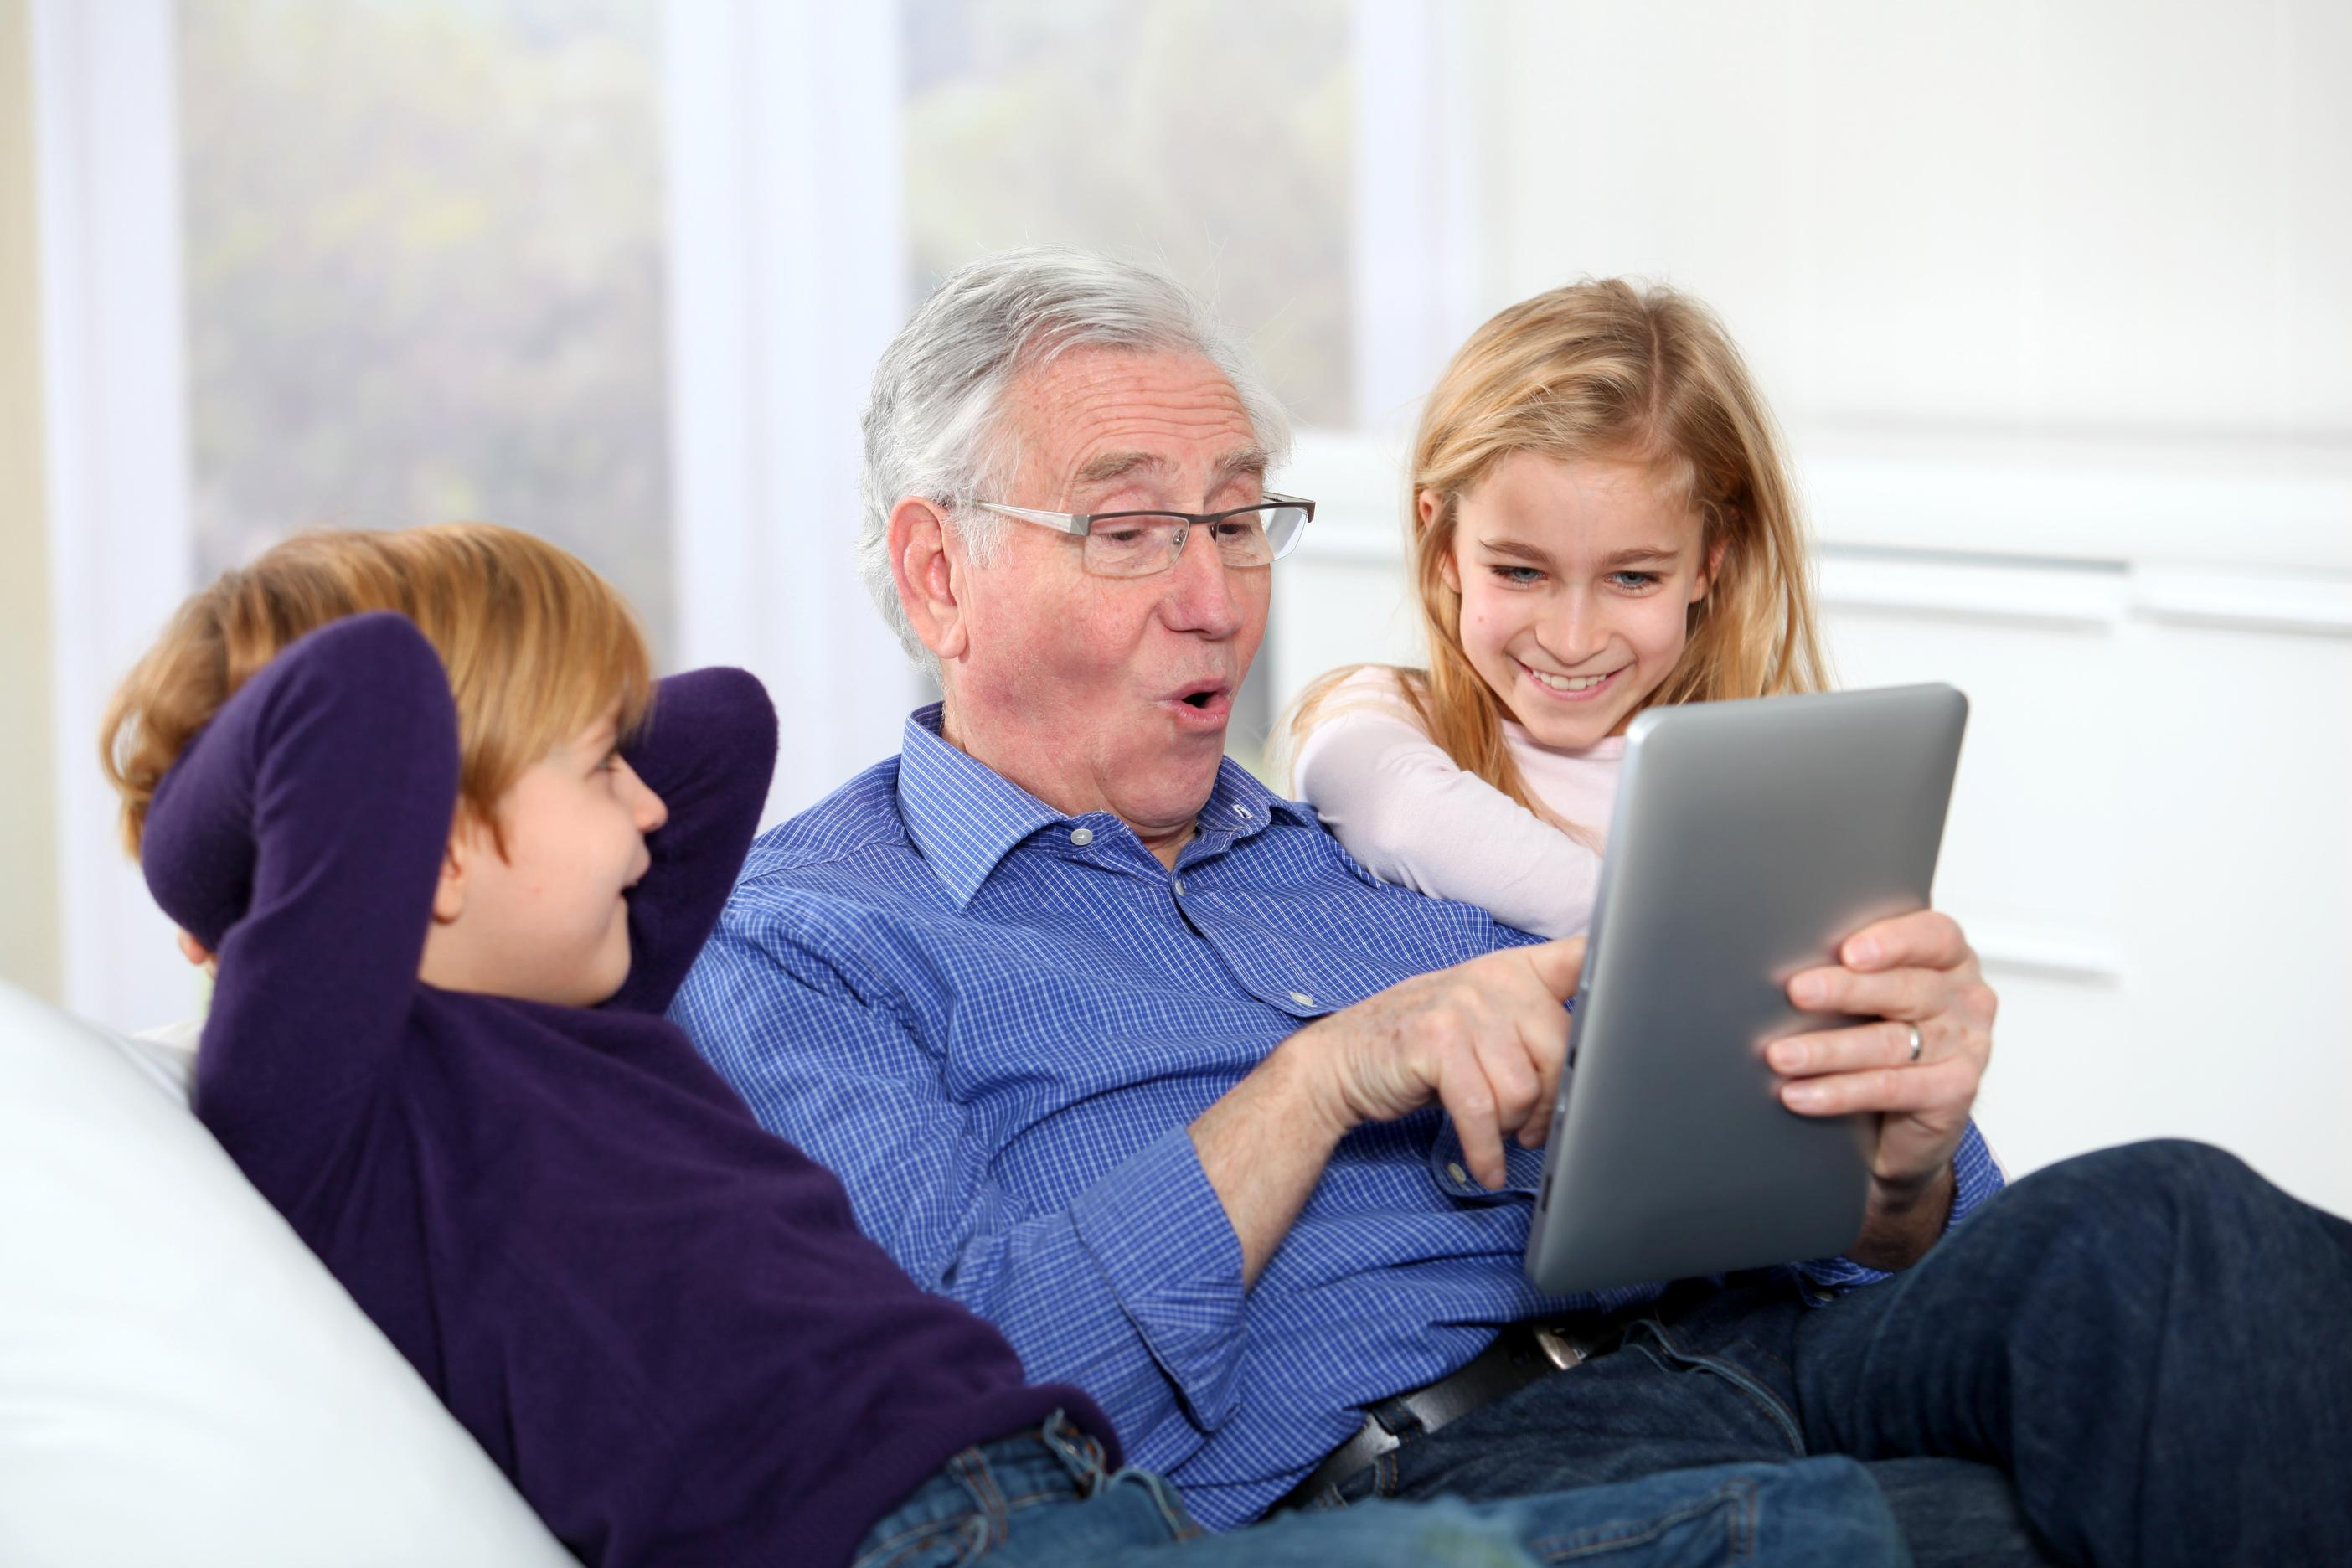 Grandfather sitting with grandchildren using a tablet